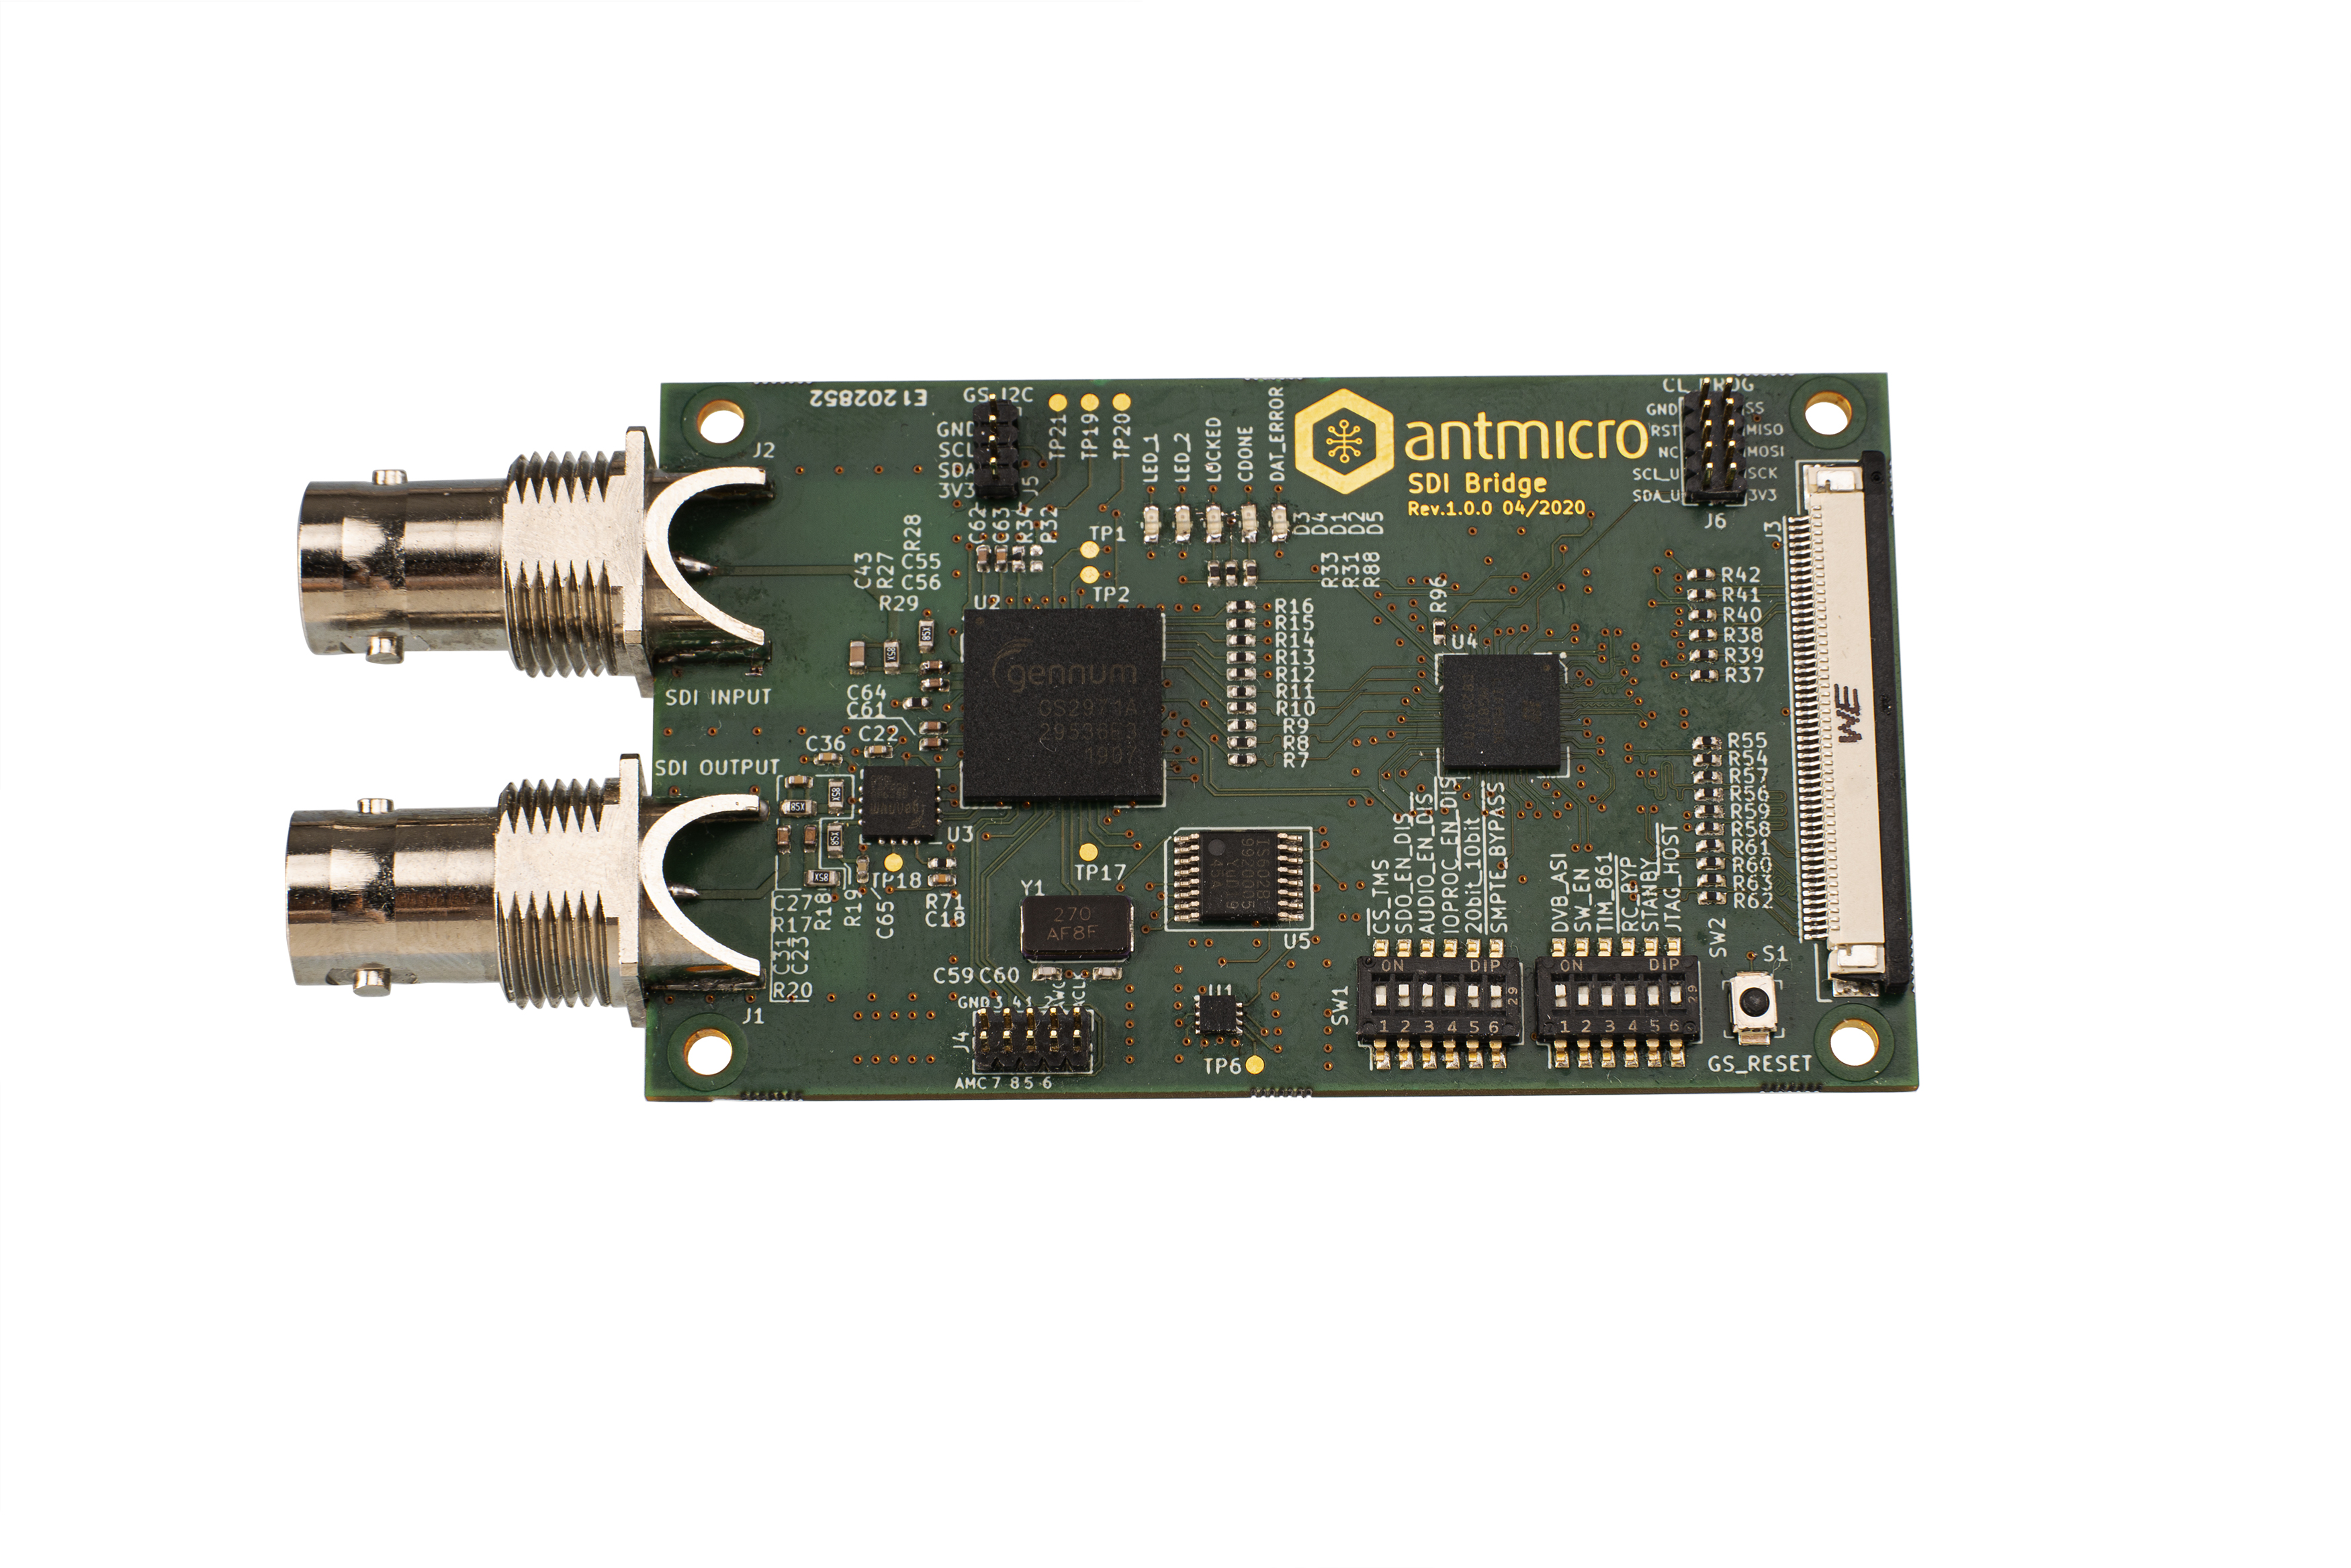 Antmicro's open source SDI-to-MIPI bridge